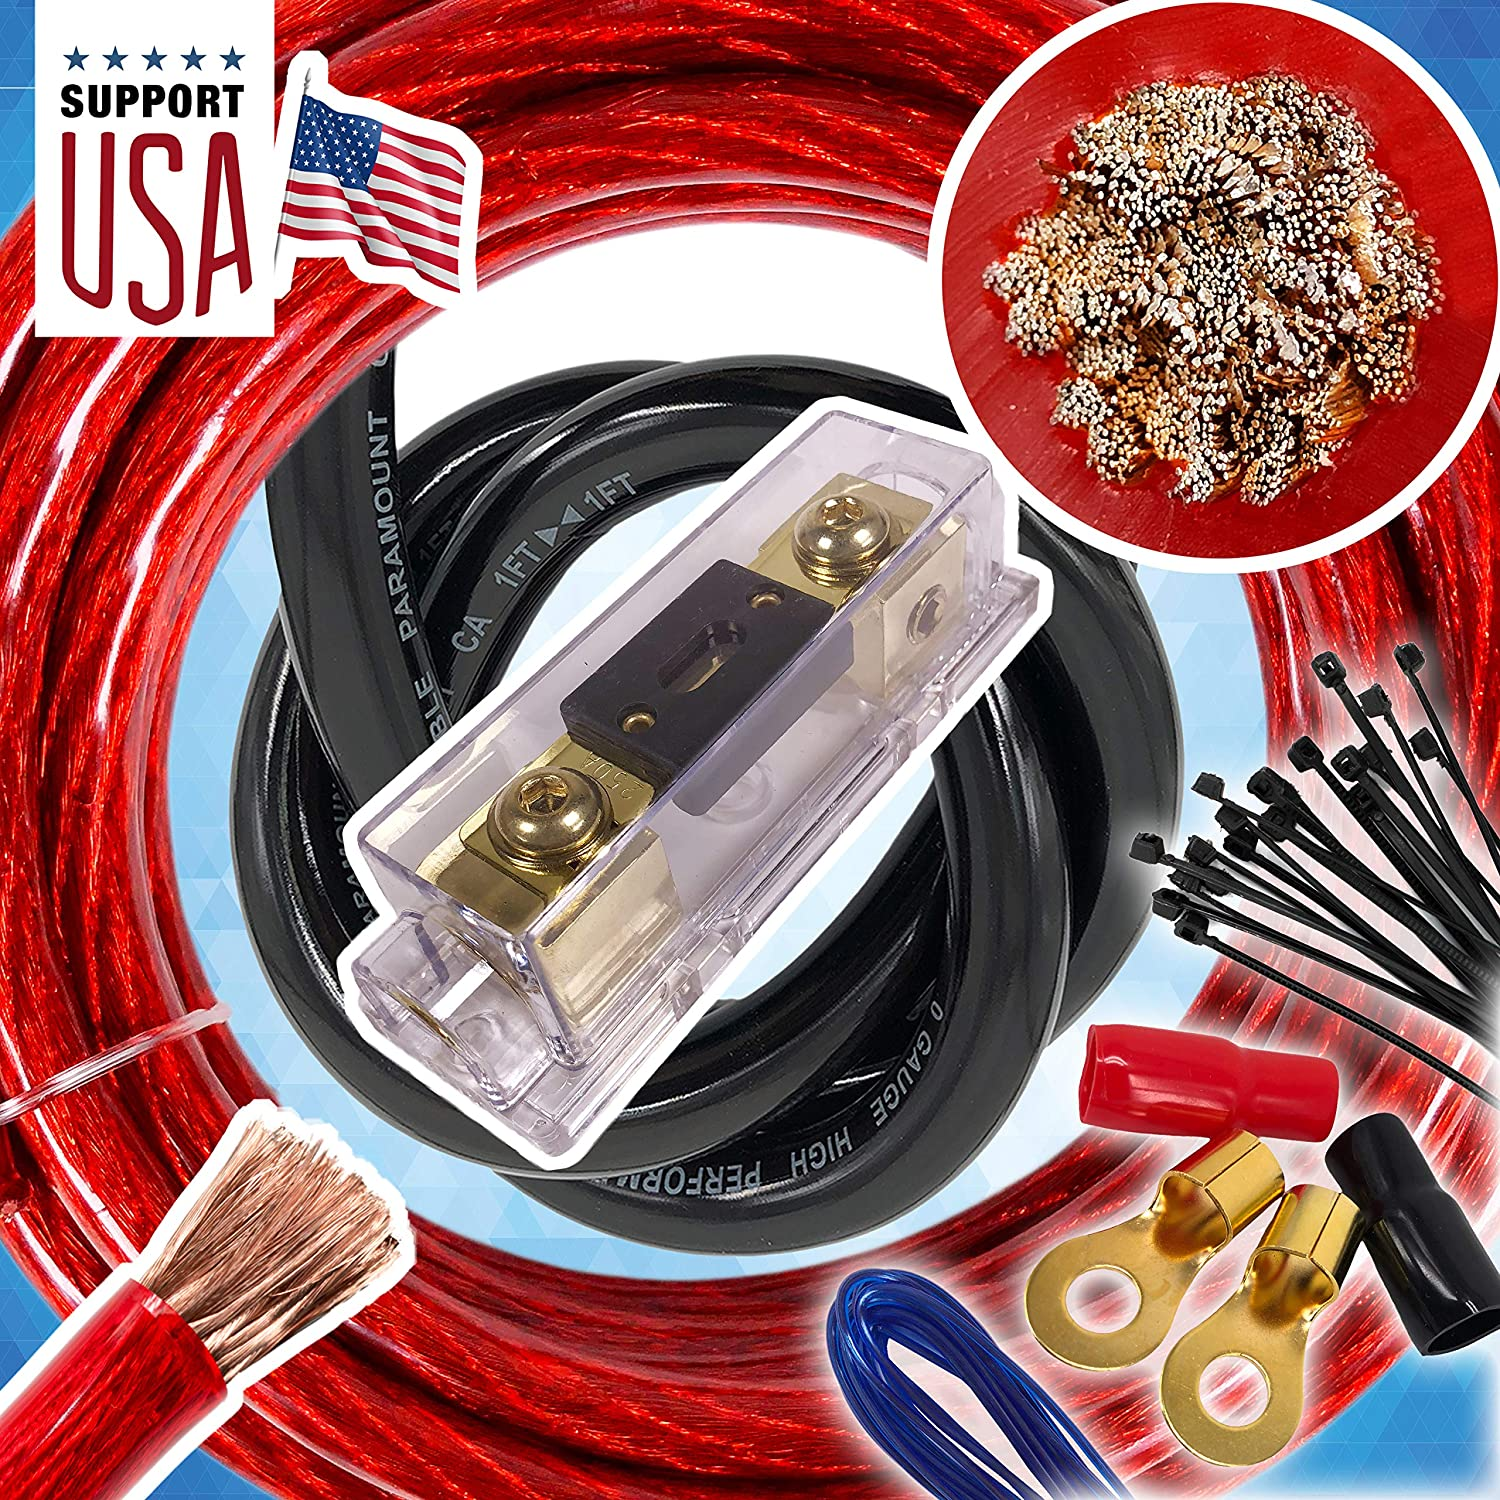 Audio360 USA 0 Gauge Cable 5000W HOT Car Amplifier Installation Power Amp Wiring Kit 1//0 Ga Red for Car Stereo